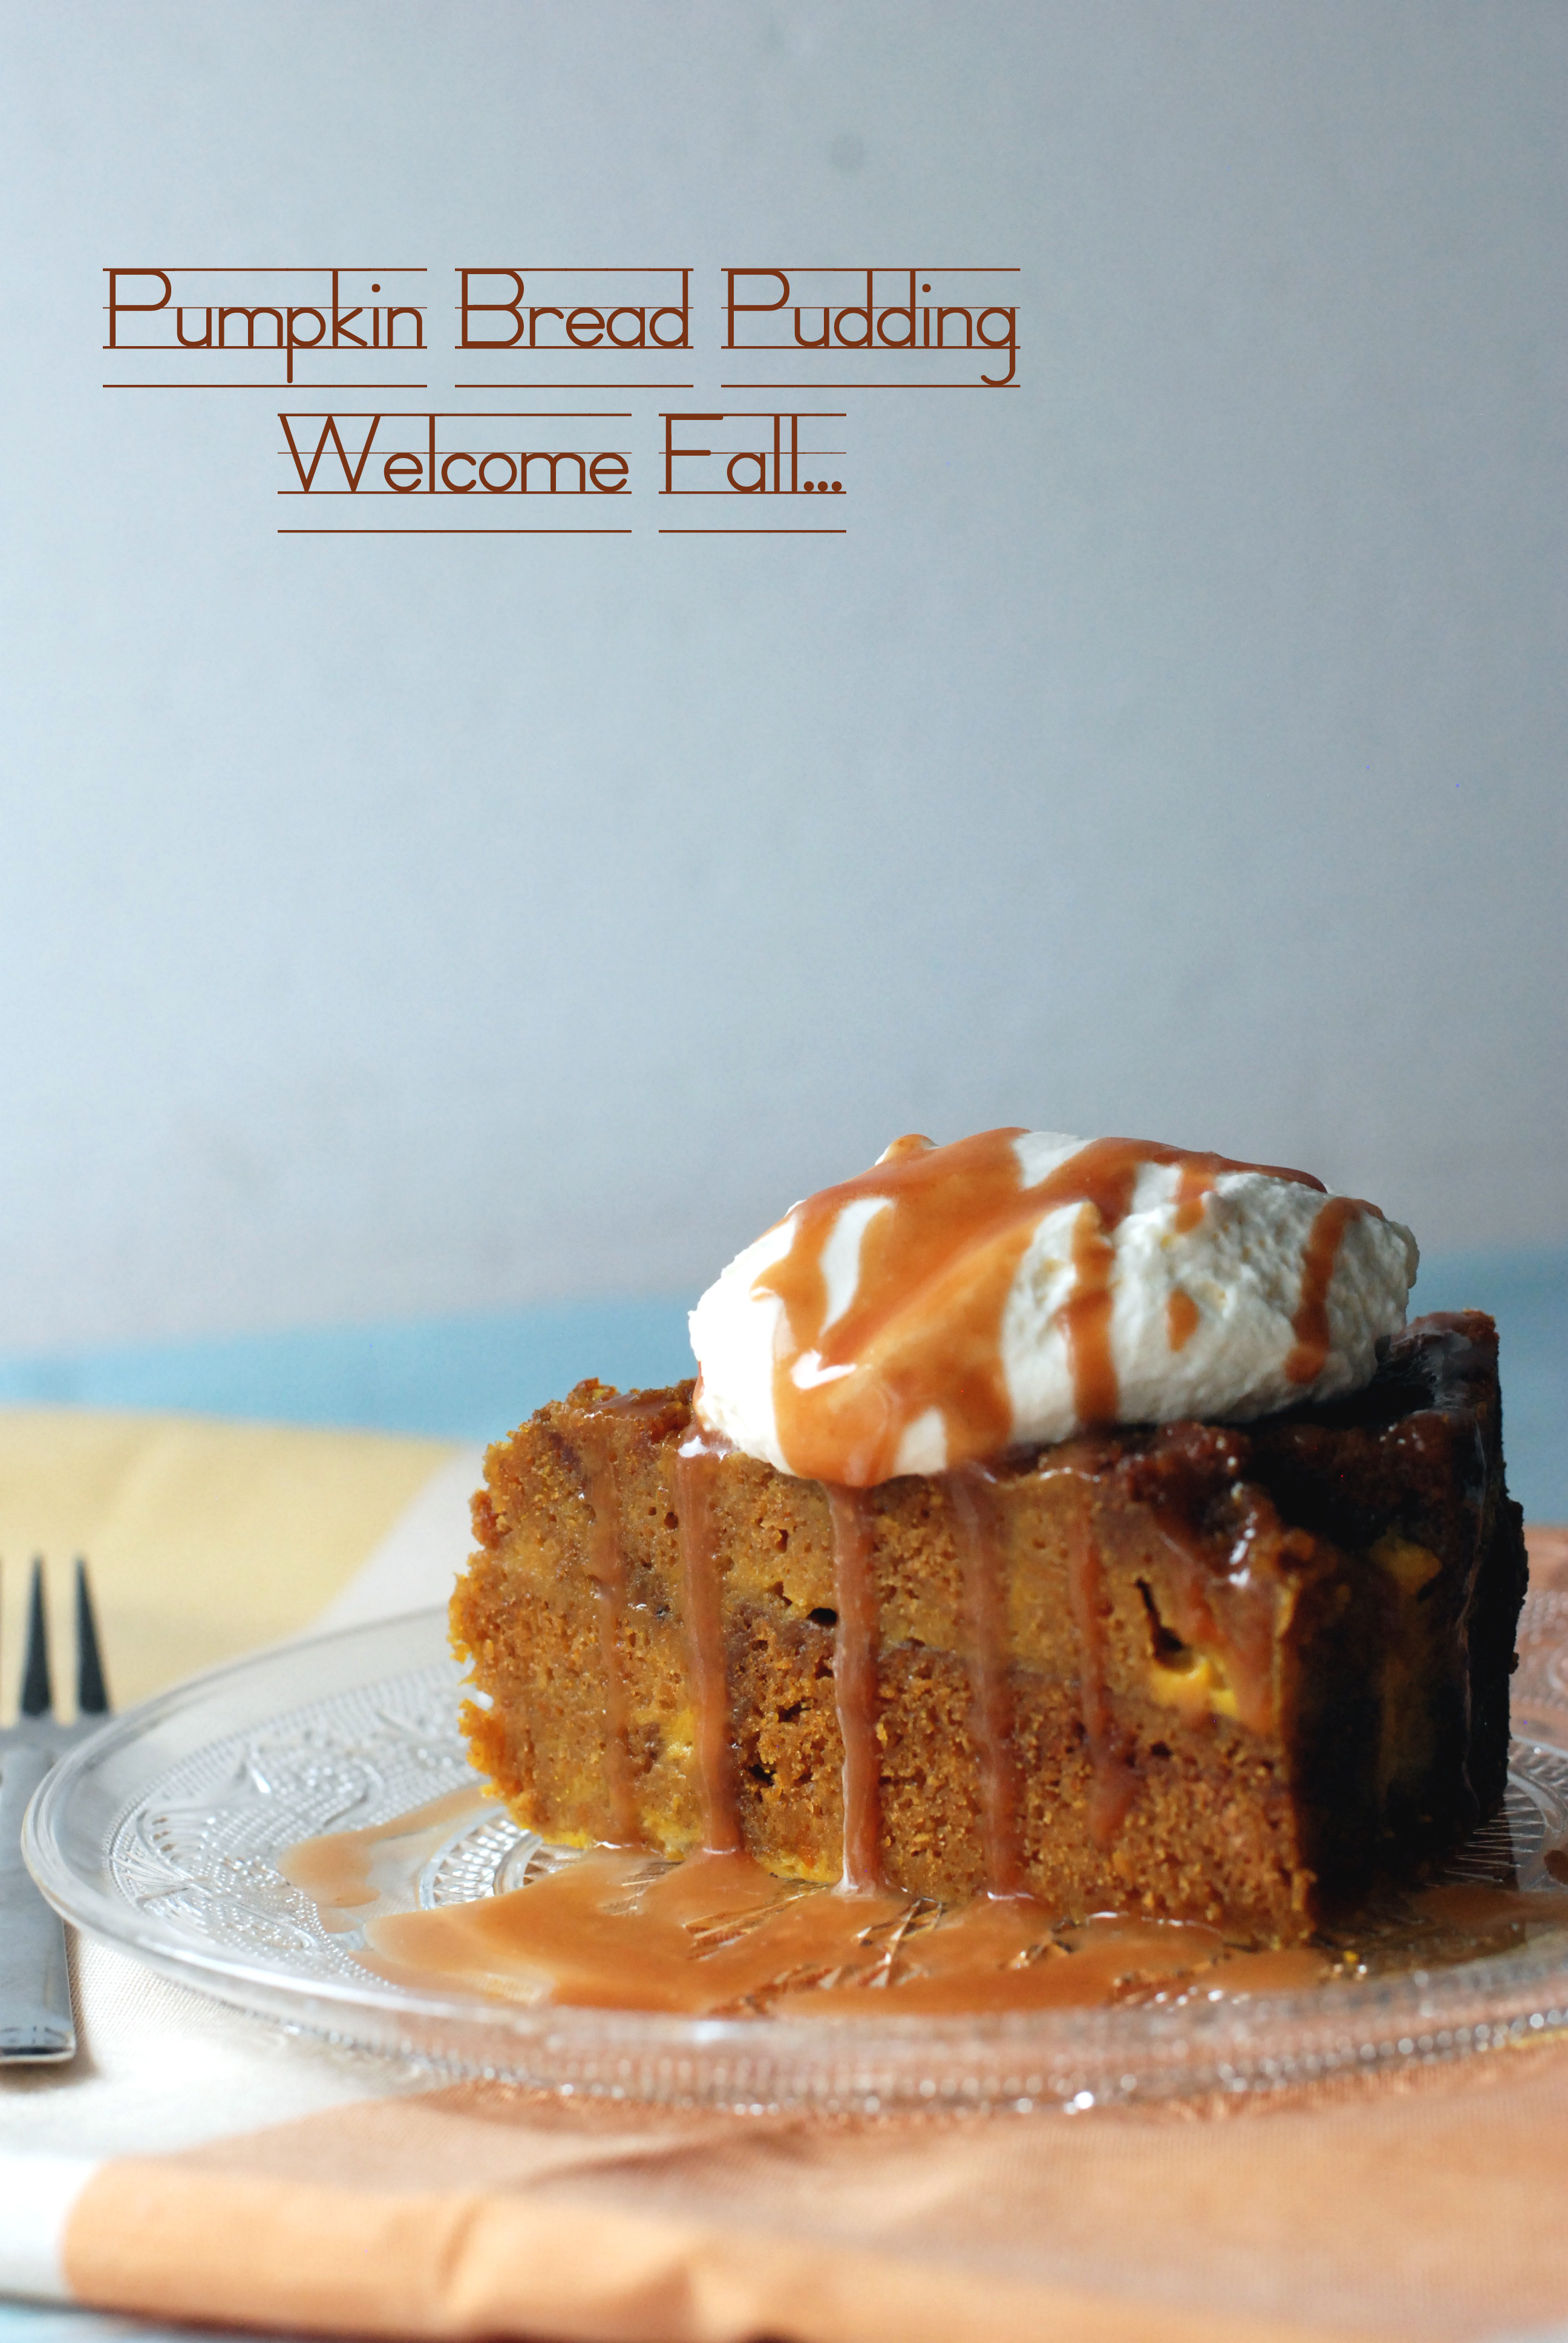 ... fall with Pumpkin Bread Pudding & spicy apple caramel « Chez Chloé